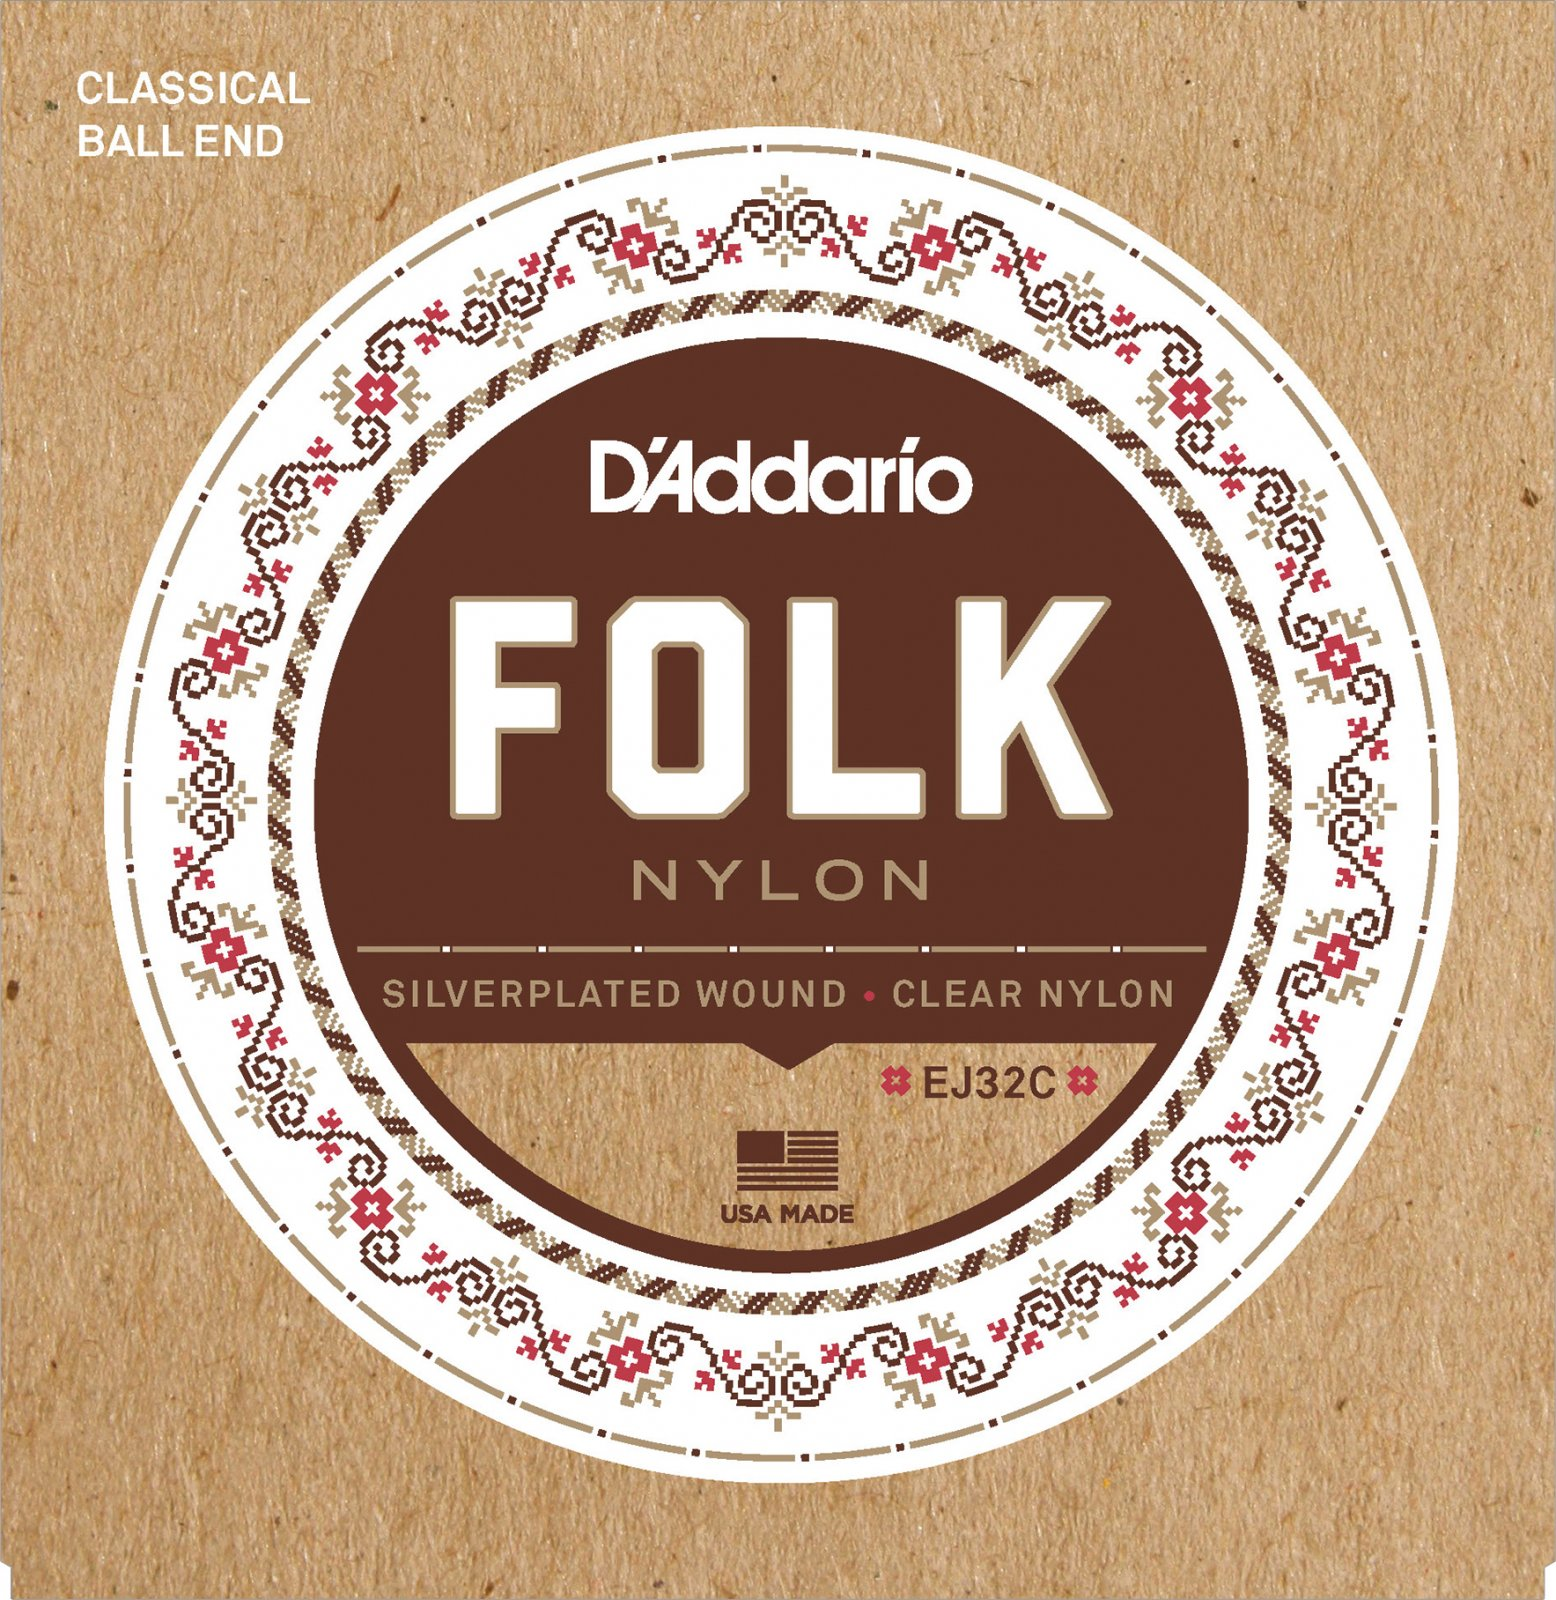 D'Addario EJ32C Set Folk Nylon Silver Wound/Ball End Clear Trebles